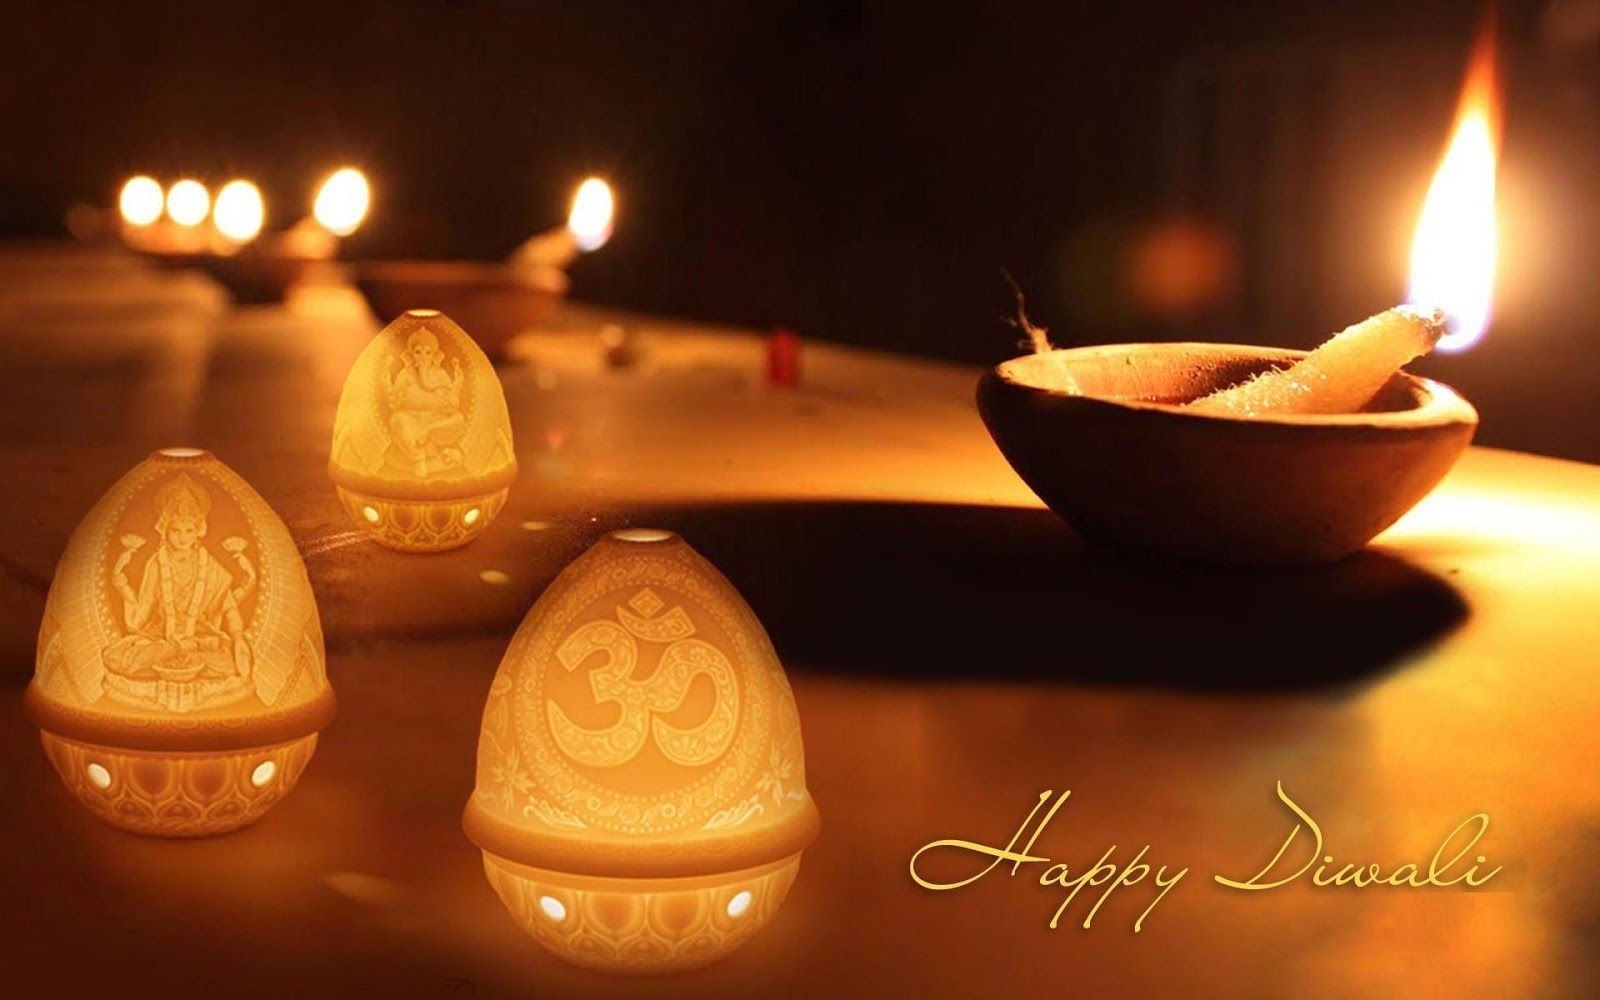 Here are best happy diwali images for you you can share it on here are best happy diwali images for you you can share it on whatsapp facebook twitter and anywhere wish happy diwali to anyone in 2017 m4hsunfo